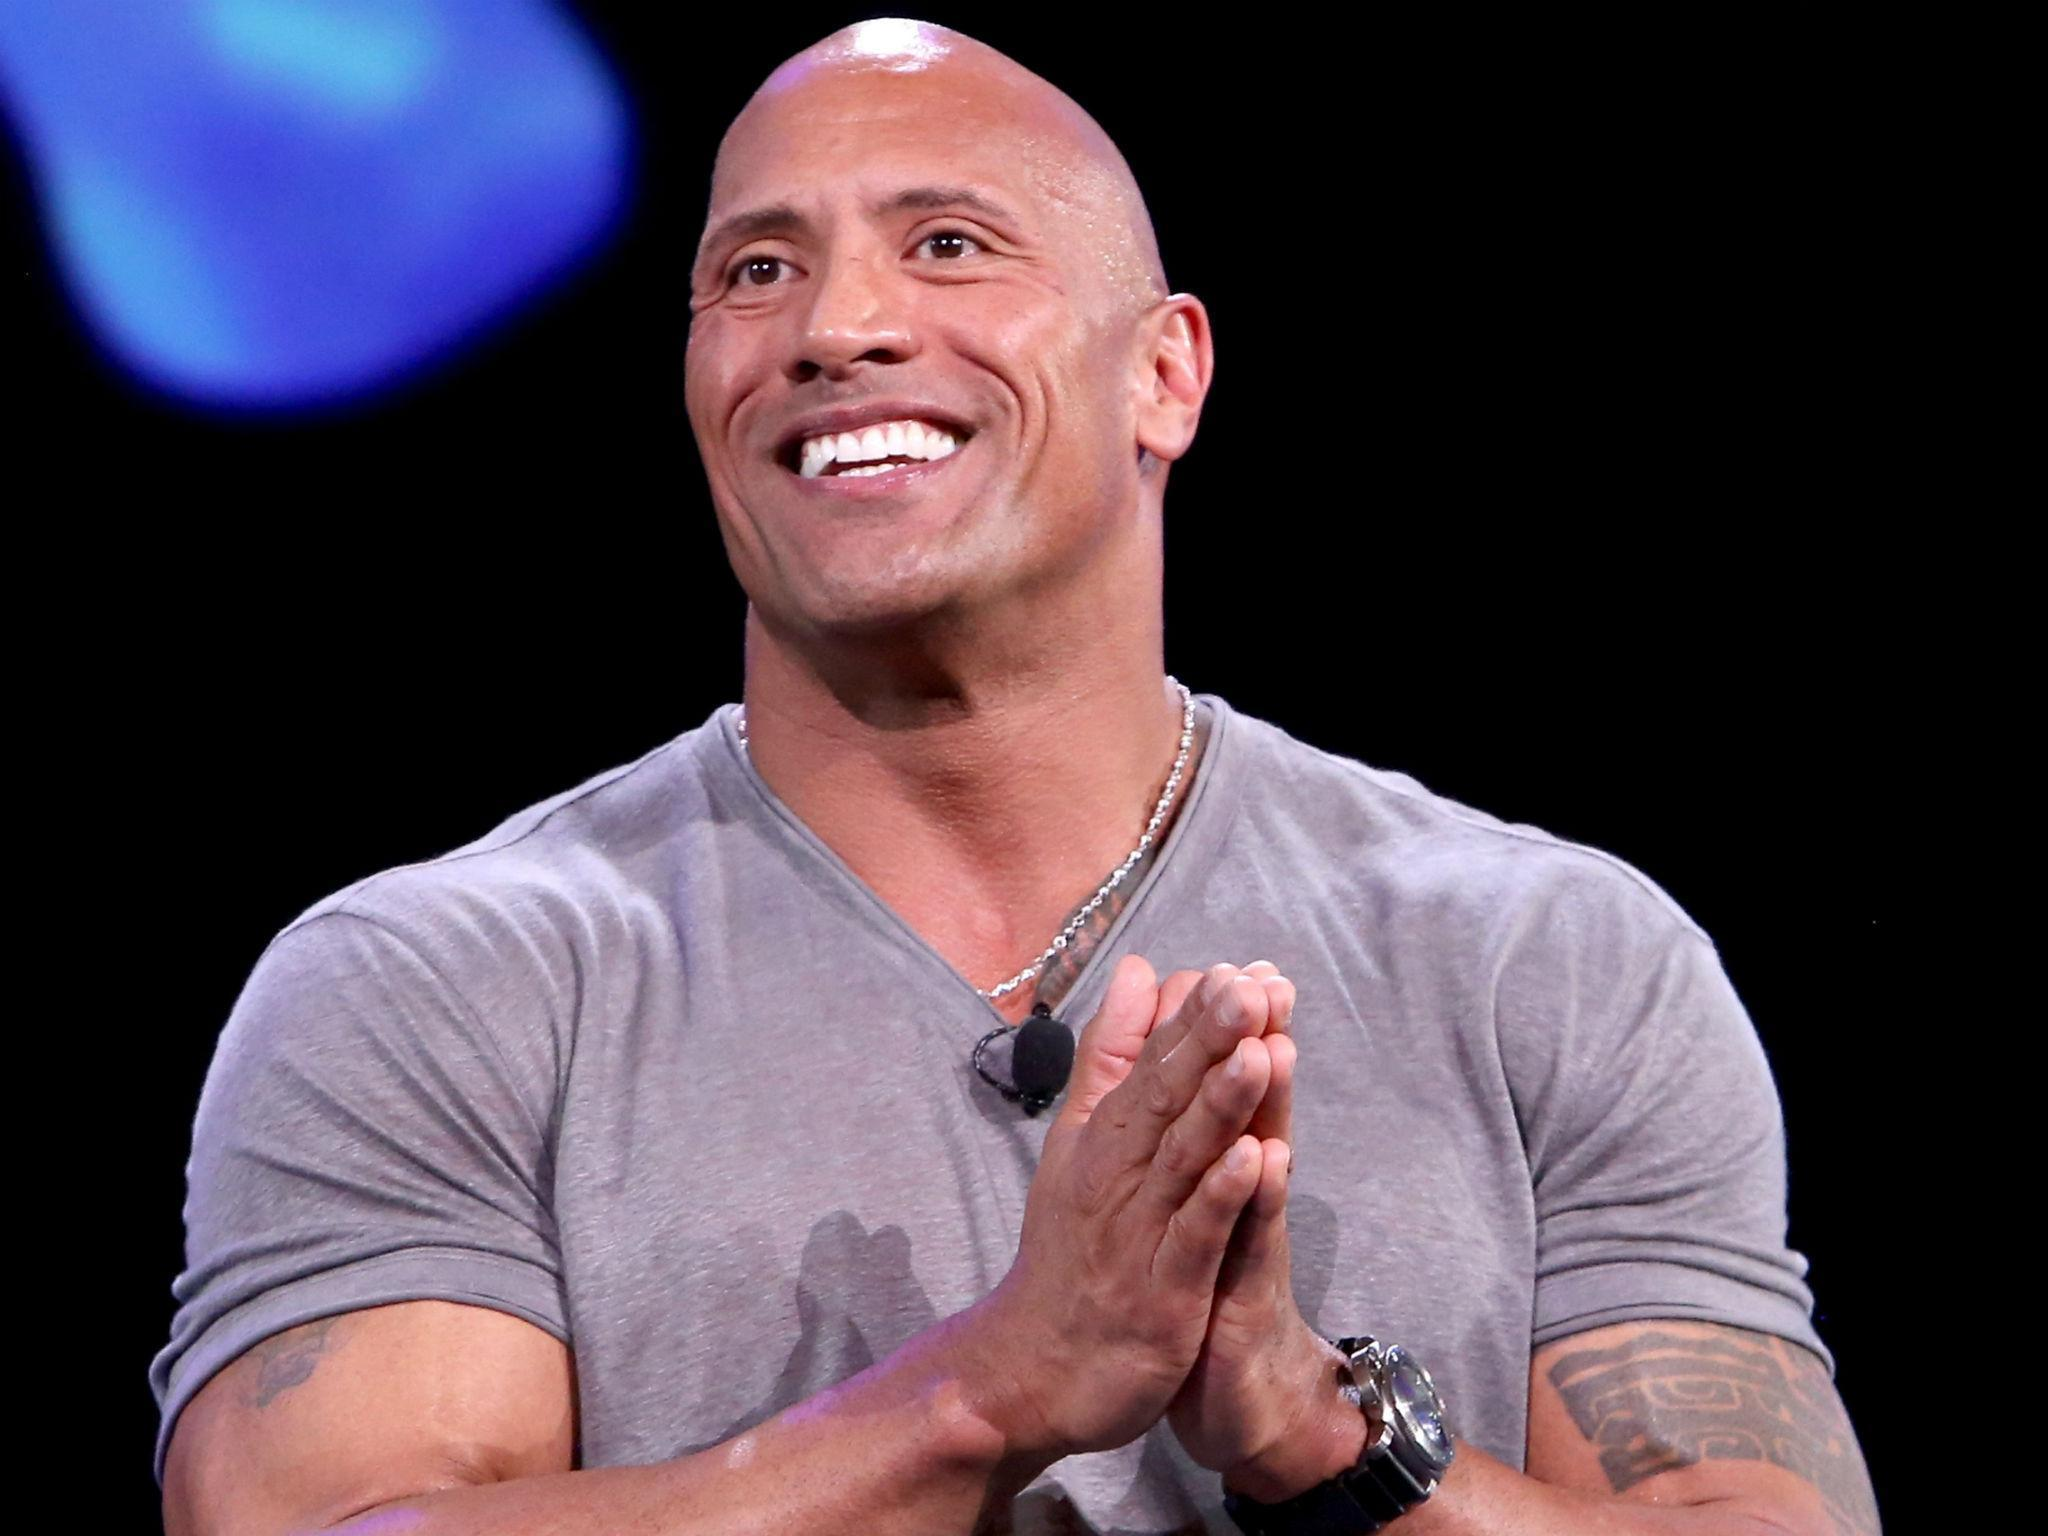 dwayne johnson - photo #48